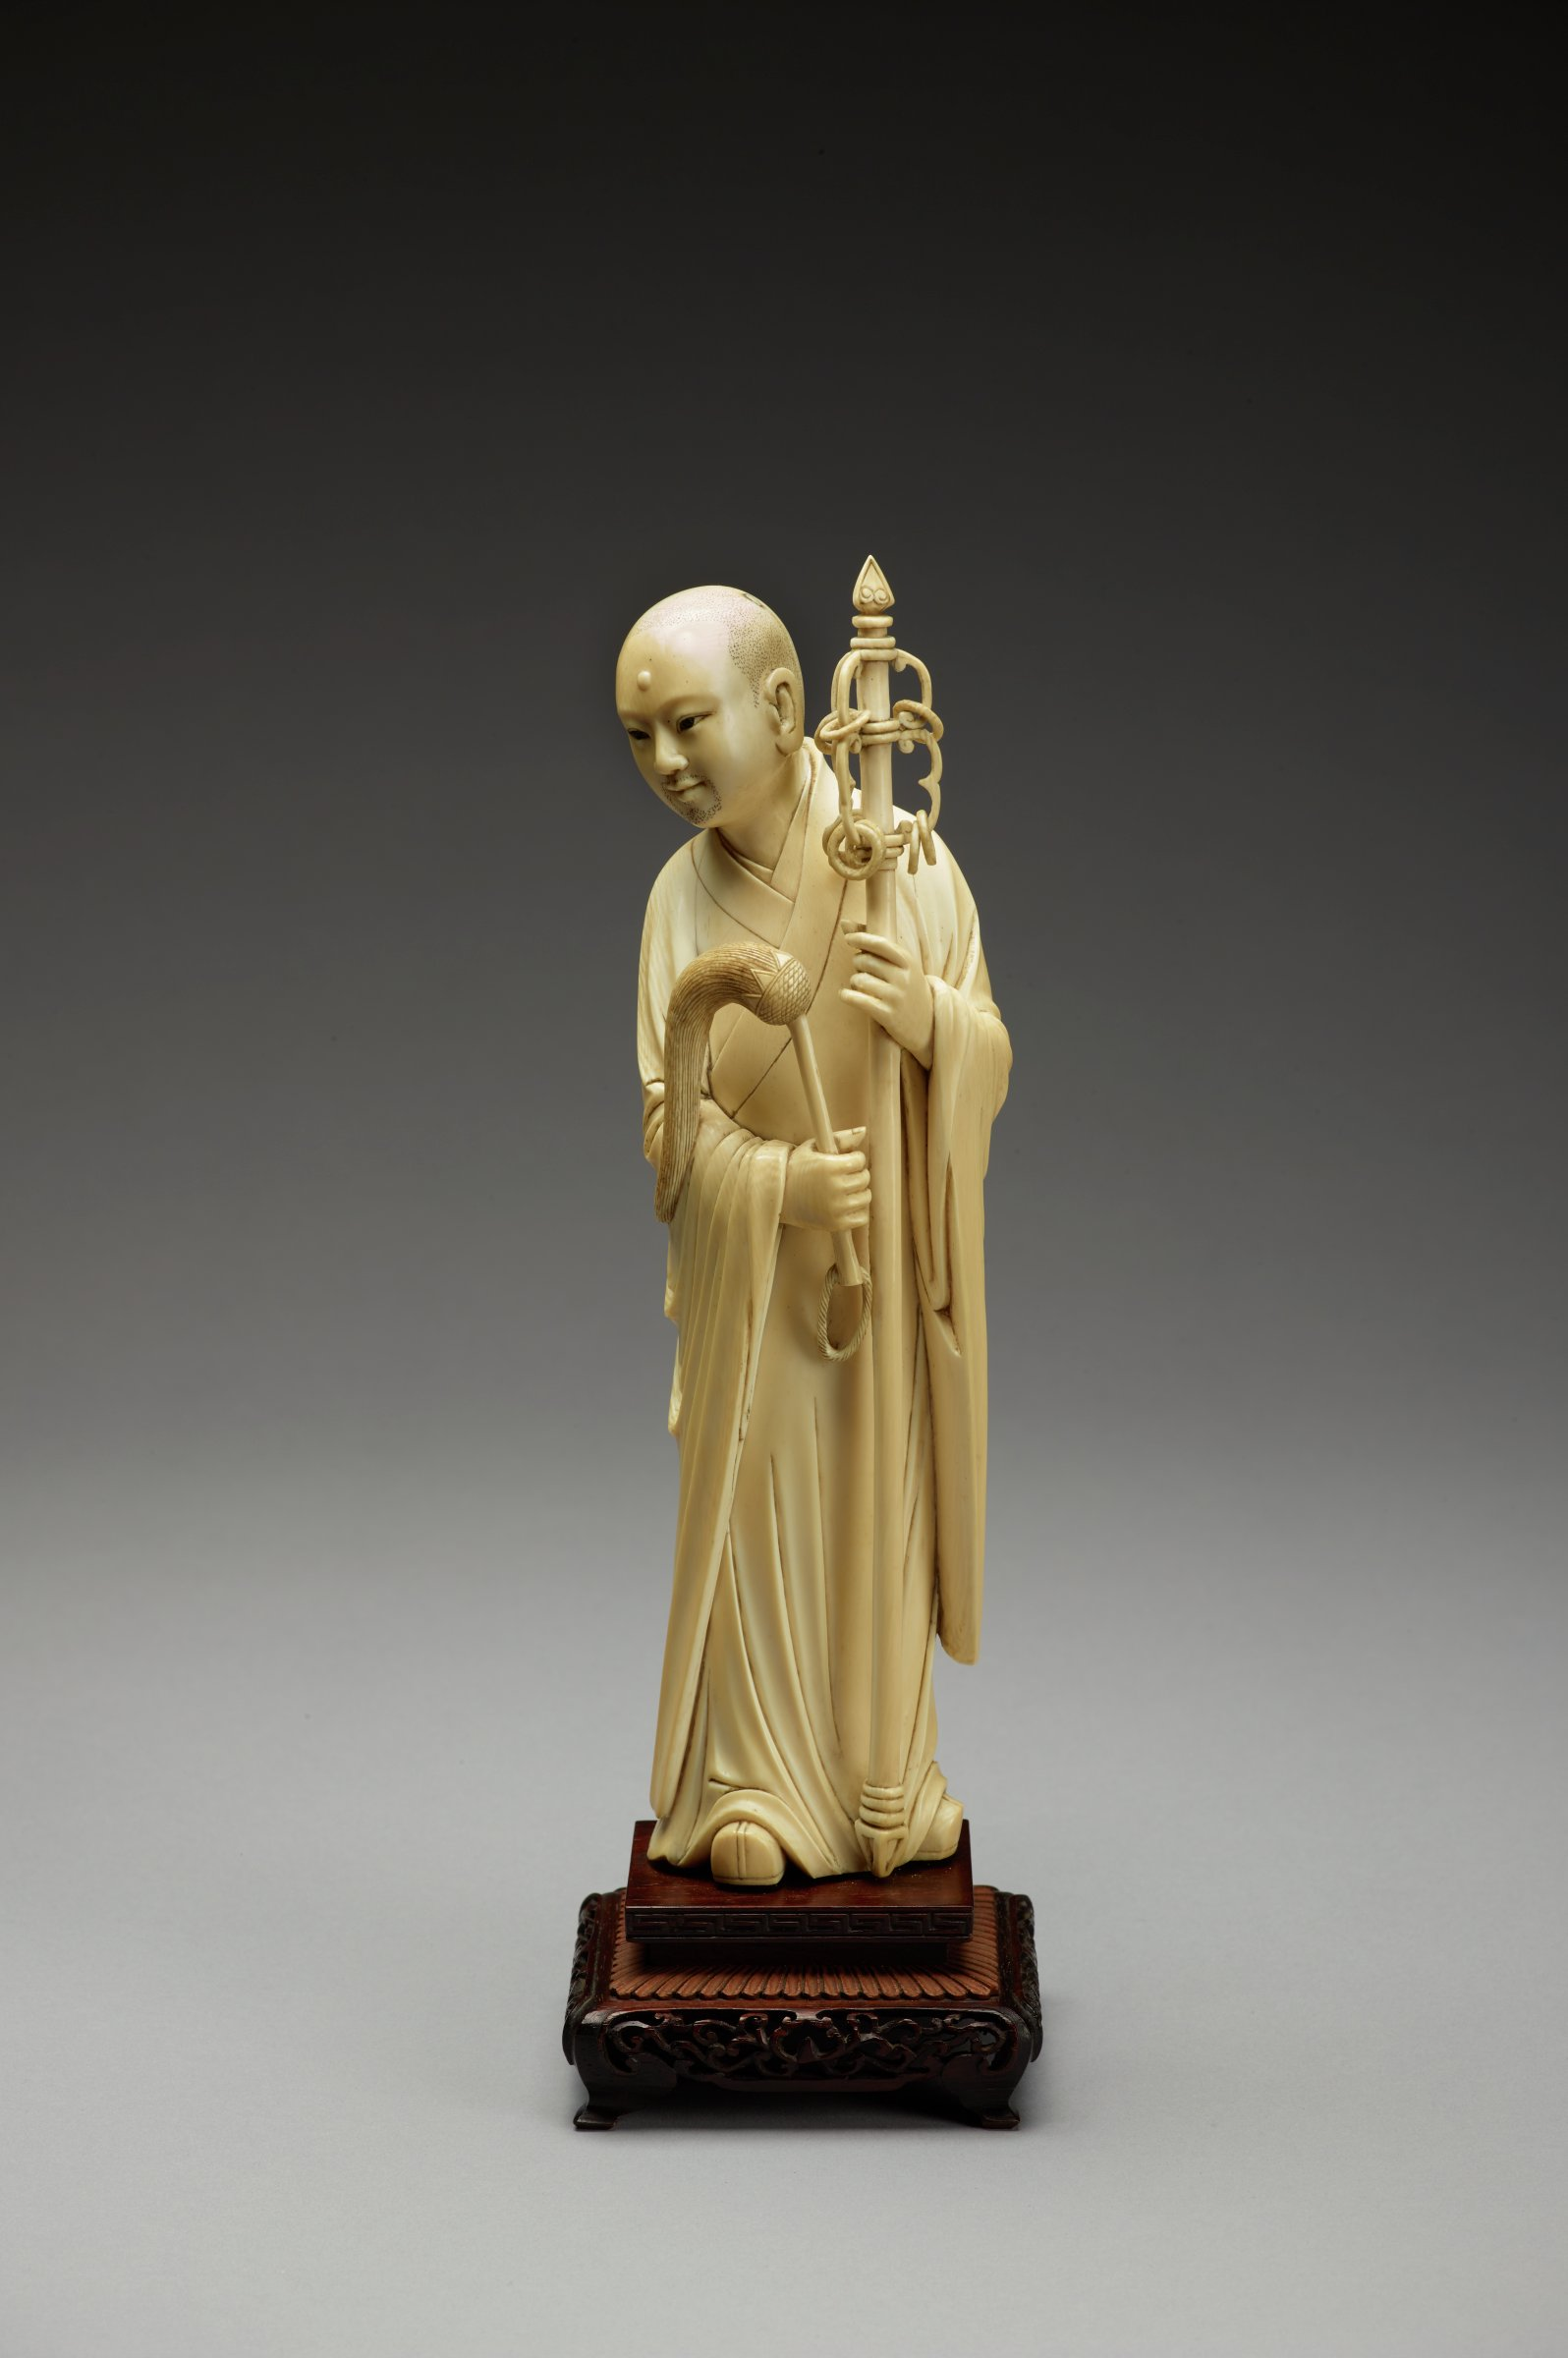 Standing shaven headed youthful monk with kkhakara carrying staff and flywisk on square wooden base